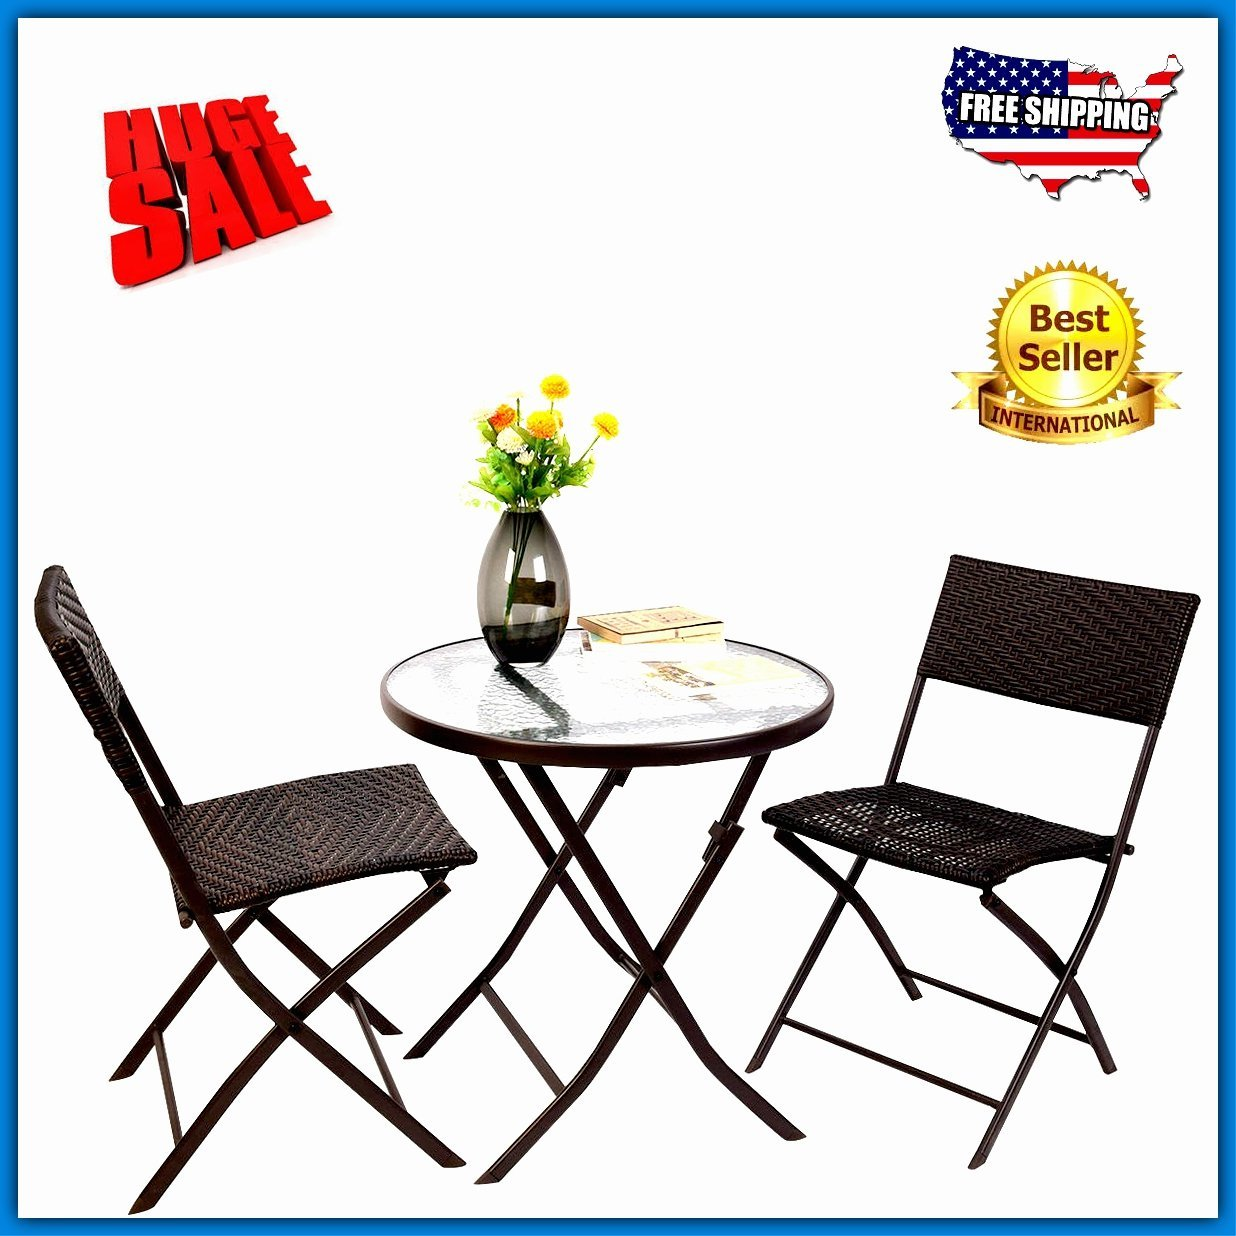 two seat lawn chairs floor chair uk cheap sturdy find deals on line at get quotations bistro table set 2 seater 3pc brown rattan metal wicker style folded